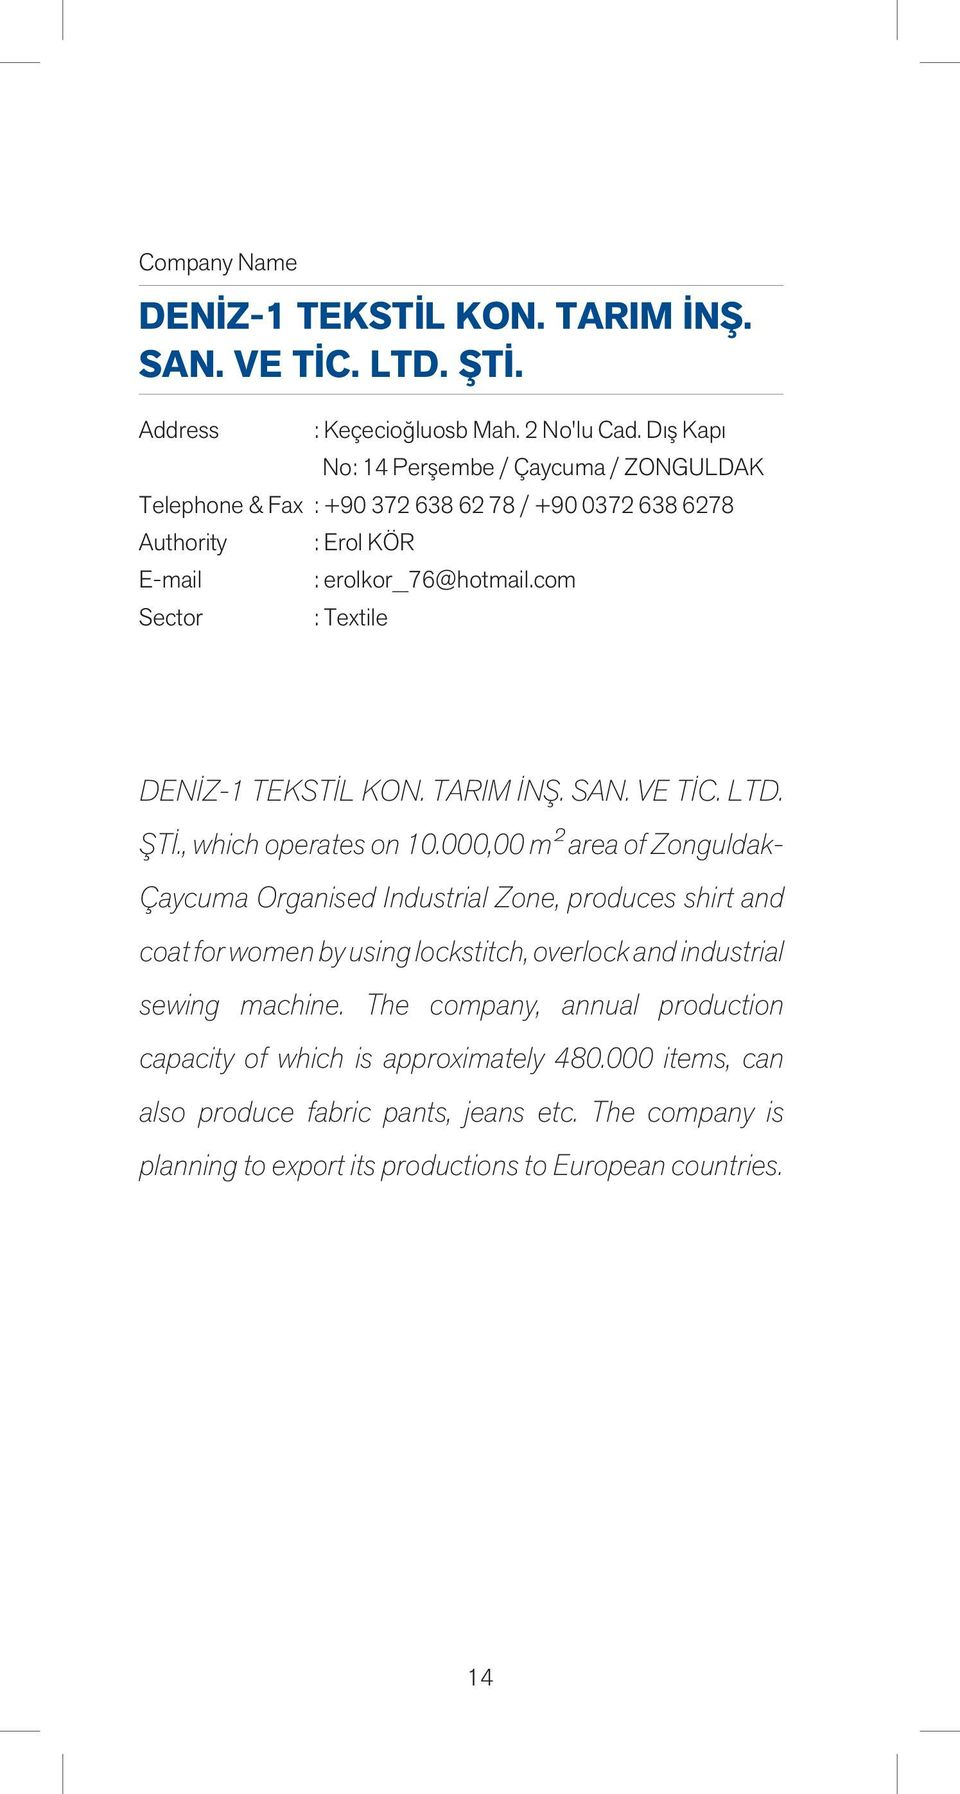 com : Textile DENİZ-1 TEKSTİL KON. TARIM İNŞ. SAN. VE TİC. LTD. ŞTİ., which operates on 10.